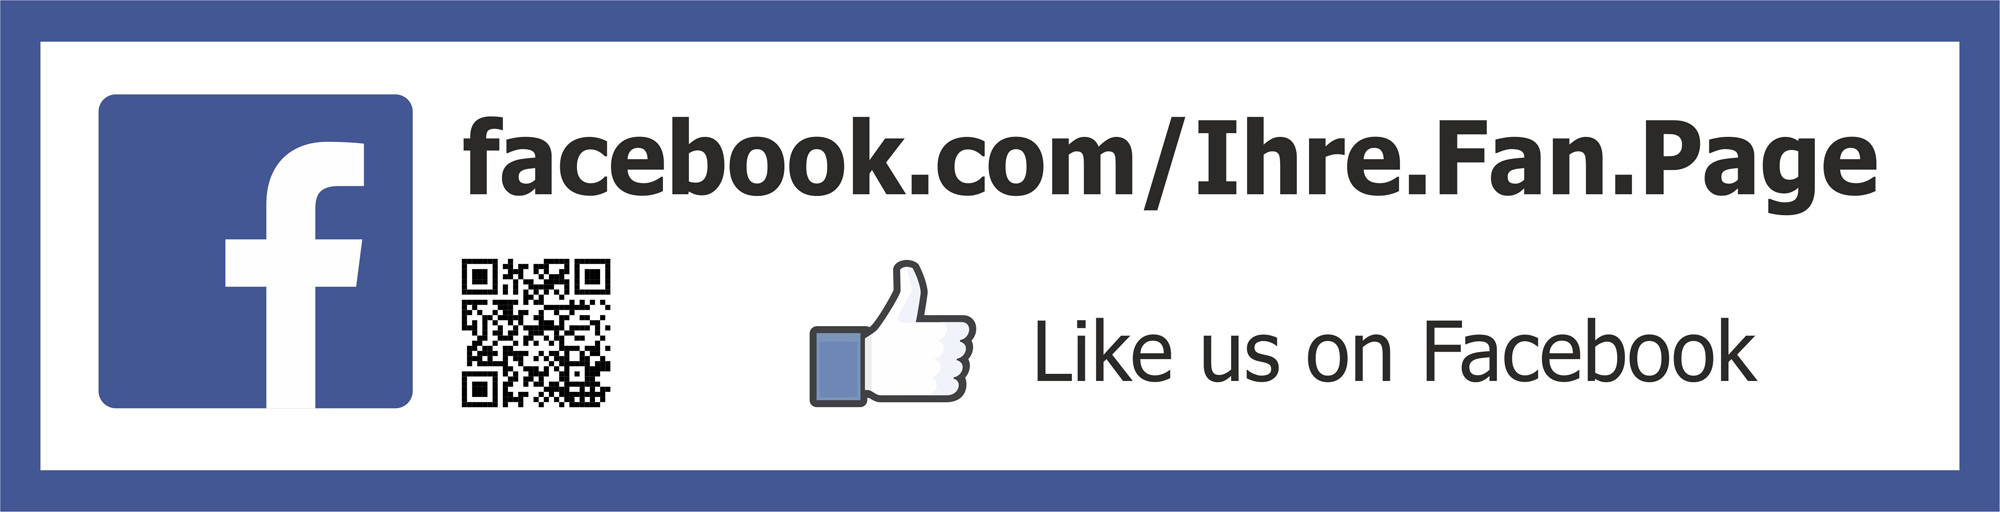 Facebook aufkleber schild gef llt mir sticker mit qr for Like us on facebook sticker template